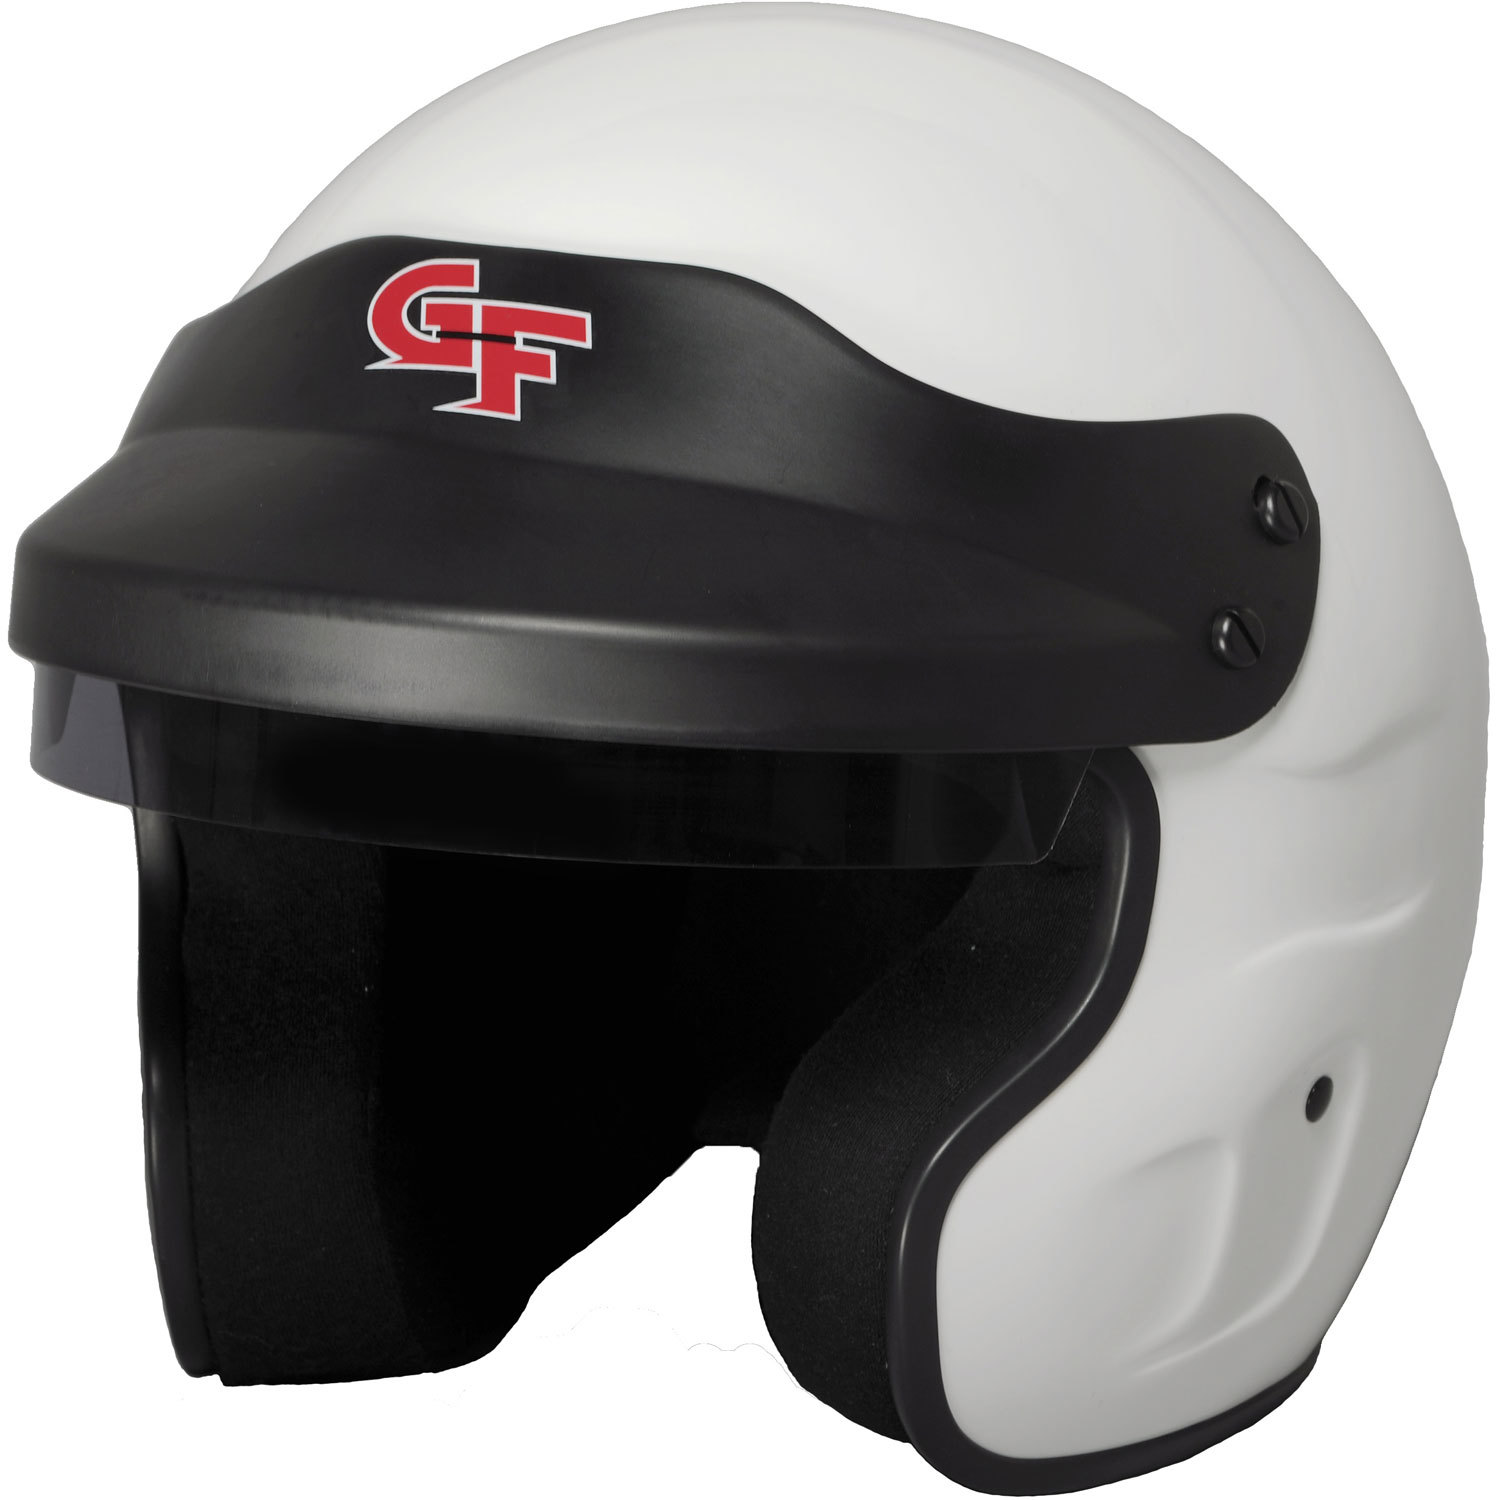 G-Force 3121XXLWH Helmet, GF1, Snell SA2015, Head and Neck Support Ready, White, 2X-Large, Each